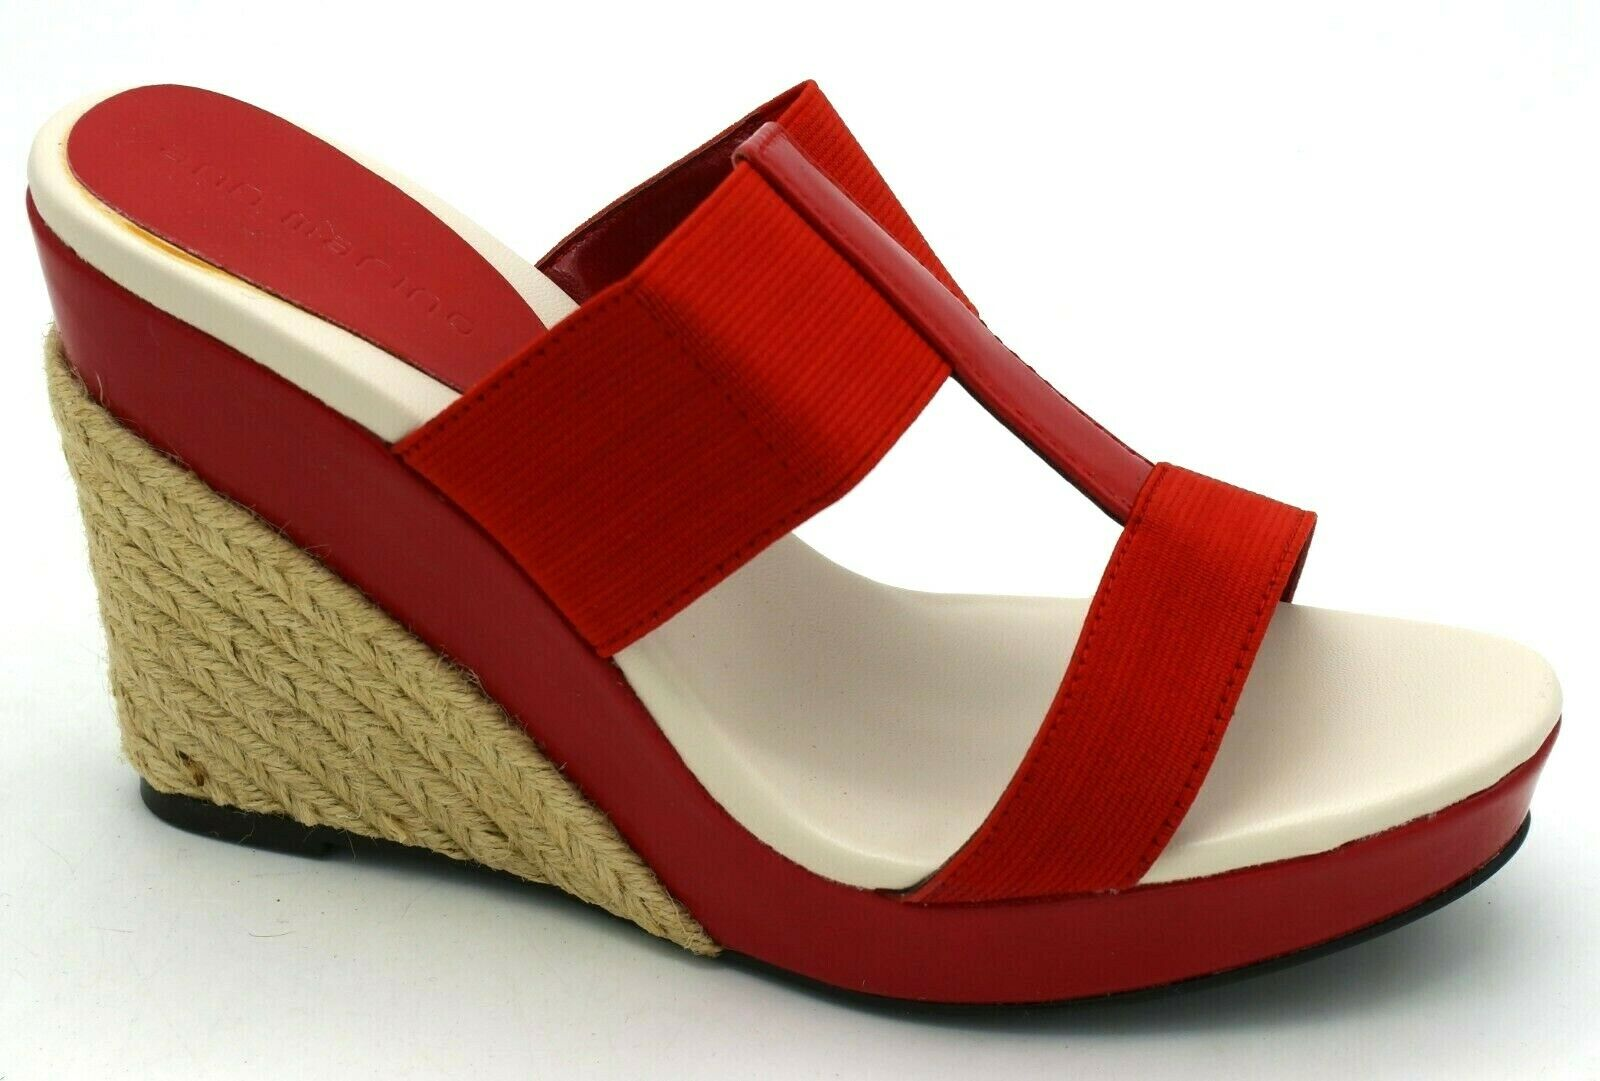 J8258 New Women's Ann Marino Joust Red Fabric Wedge Espadrilles Sandal 6.5 M